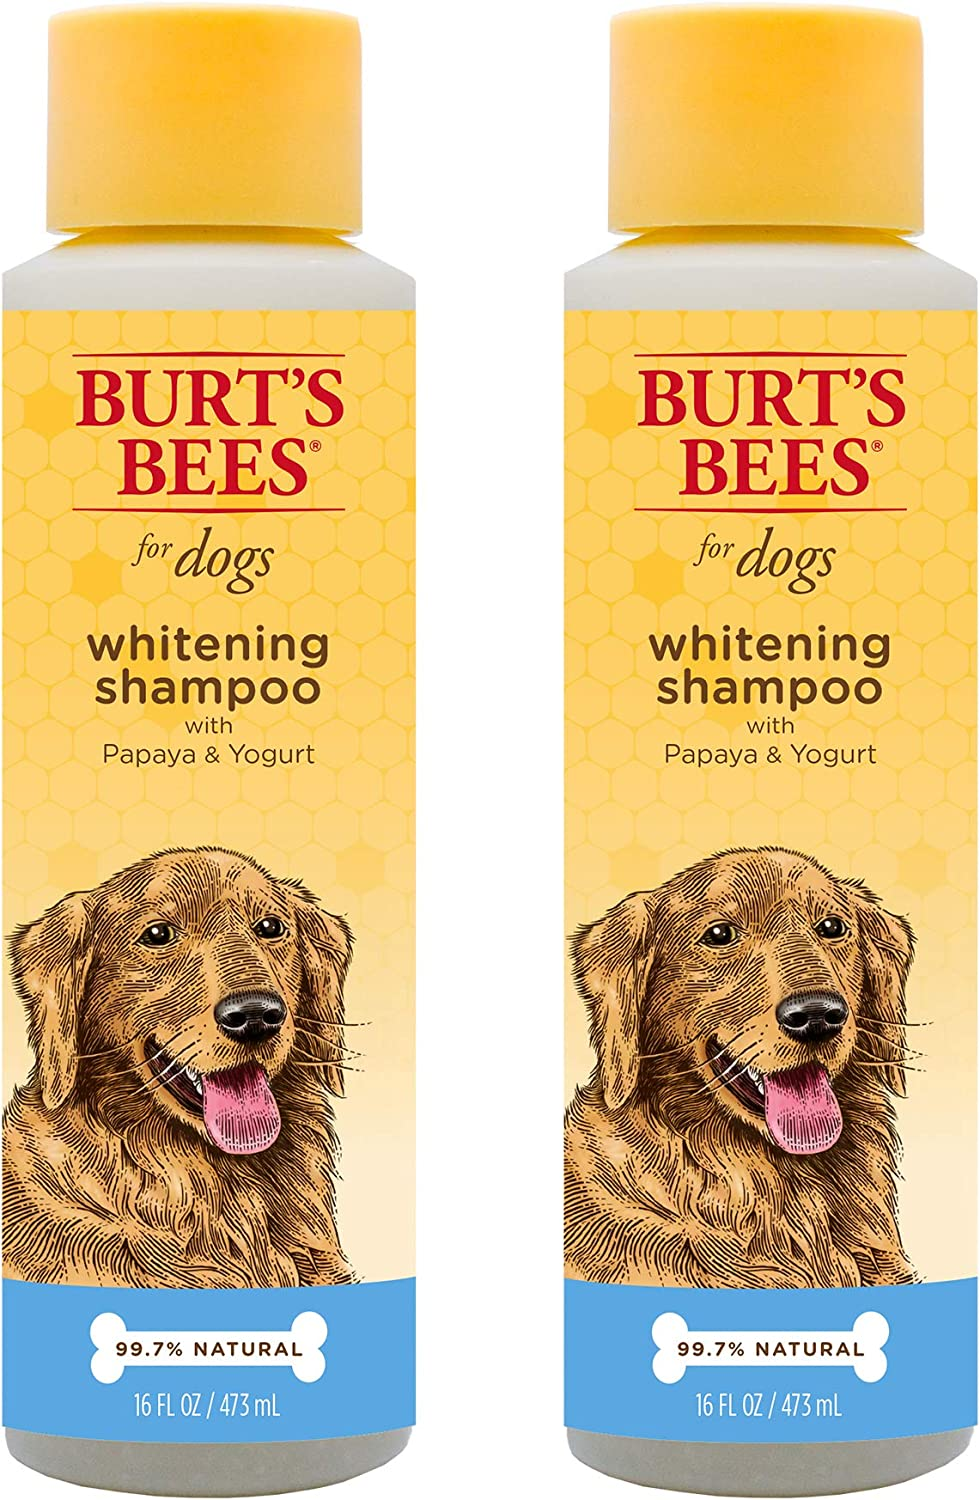 Burt's Bees for Dogs Natural Whitening Shampoo with Papaya and Yogurt | Puppy and Dog Shampoo, 16 Ounces